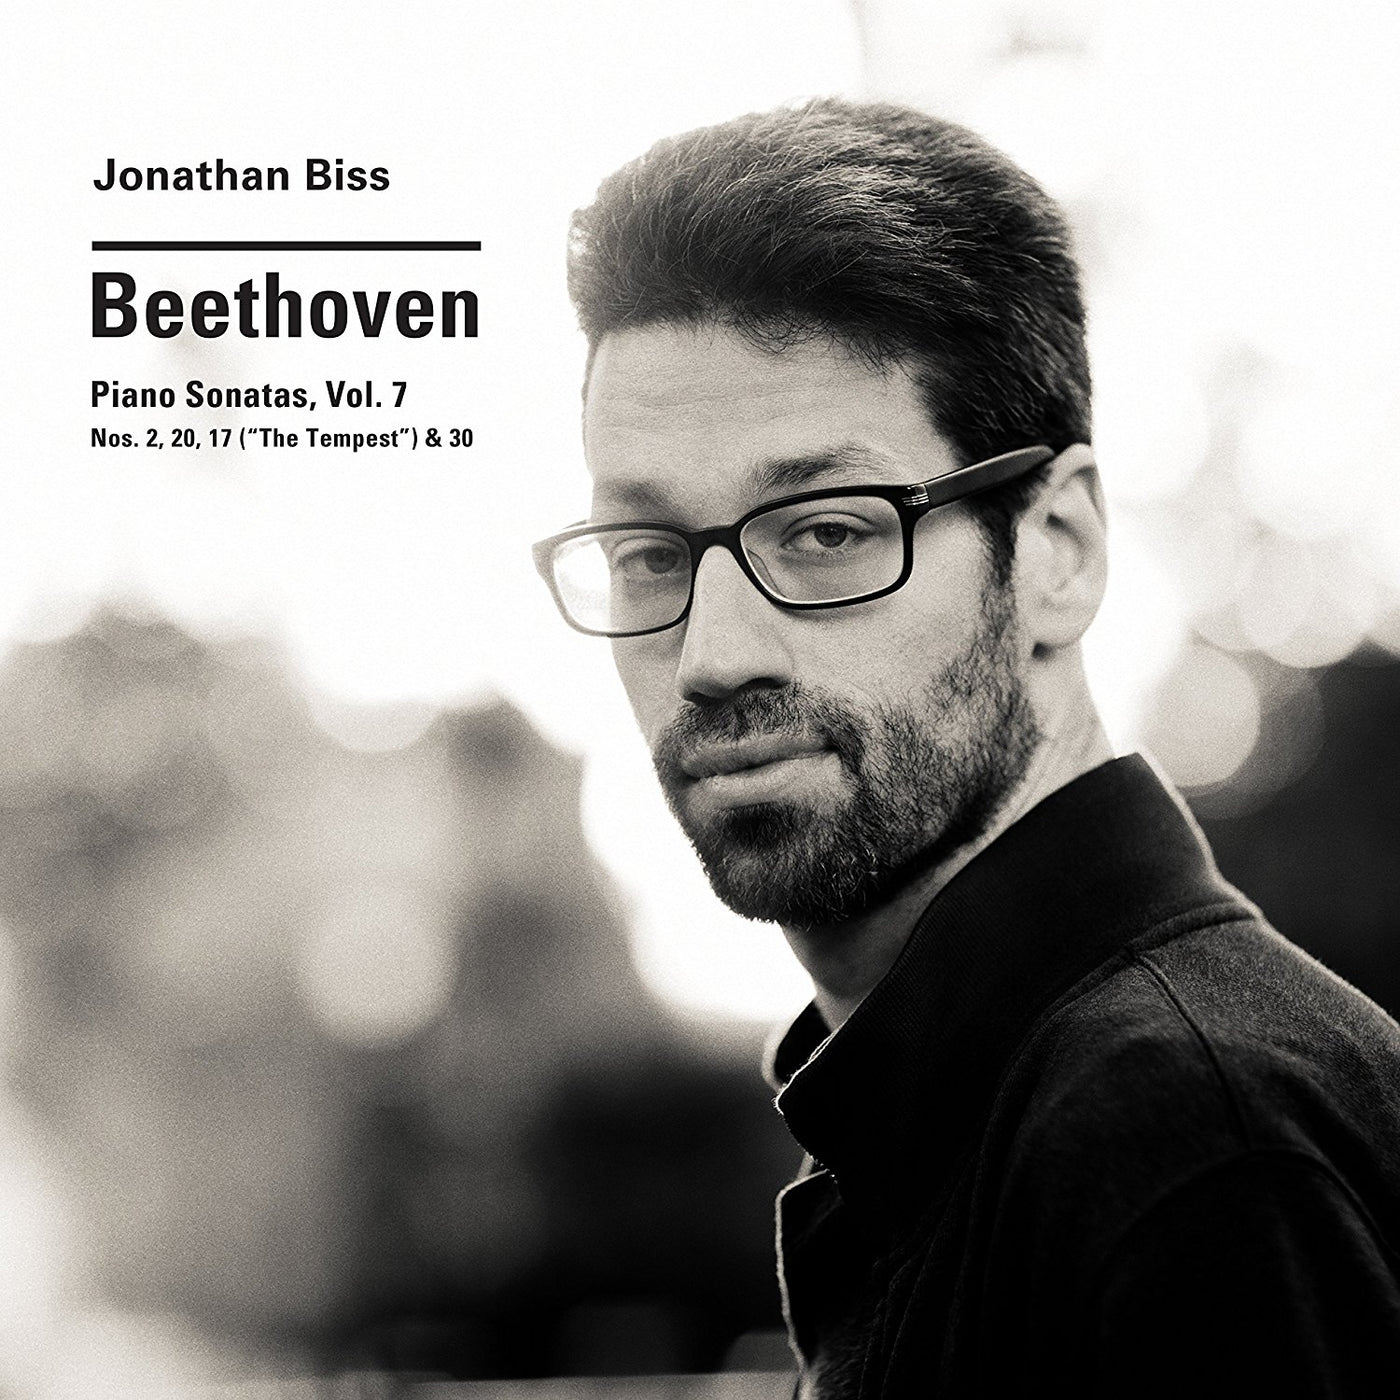 Beethoven: Piano Sonatas, Vol. 7 by Jonathan Biss